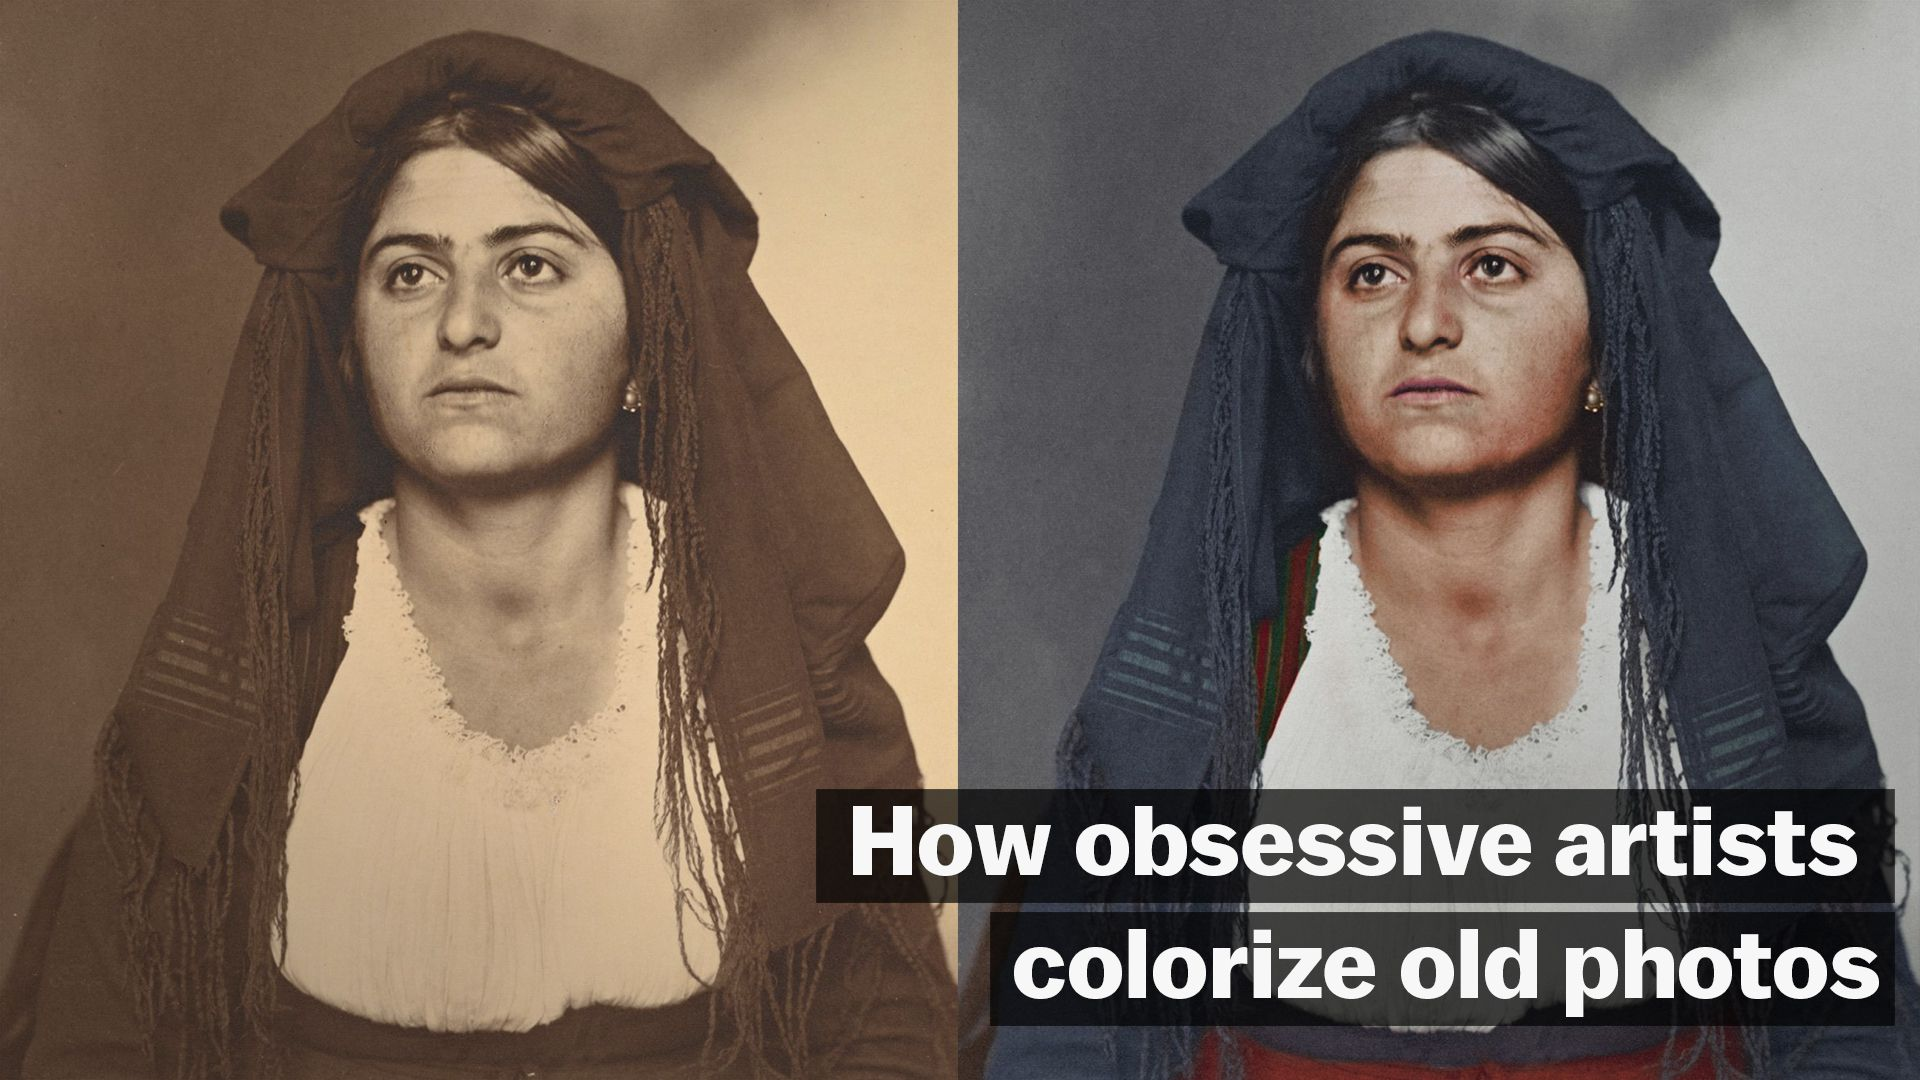 How obsessive artists colorize old photos vox